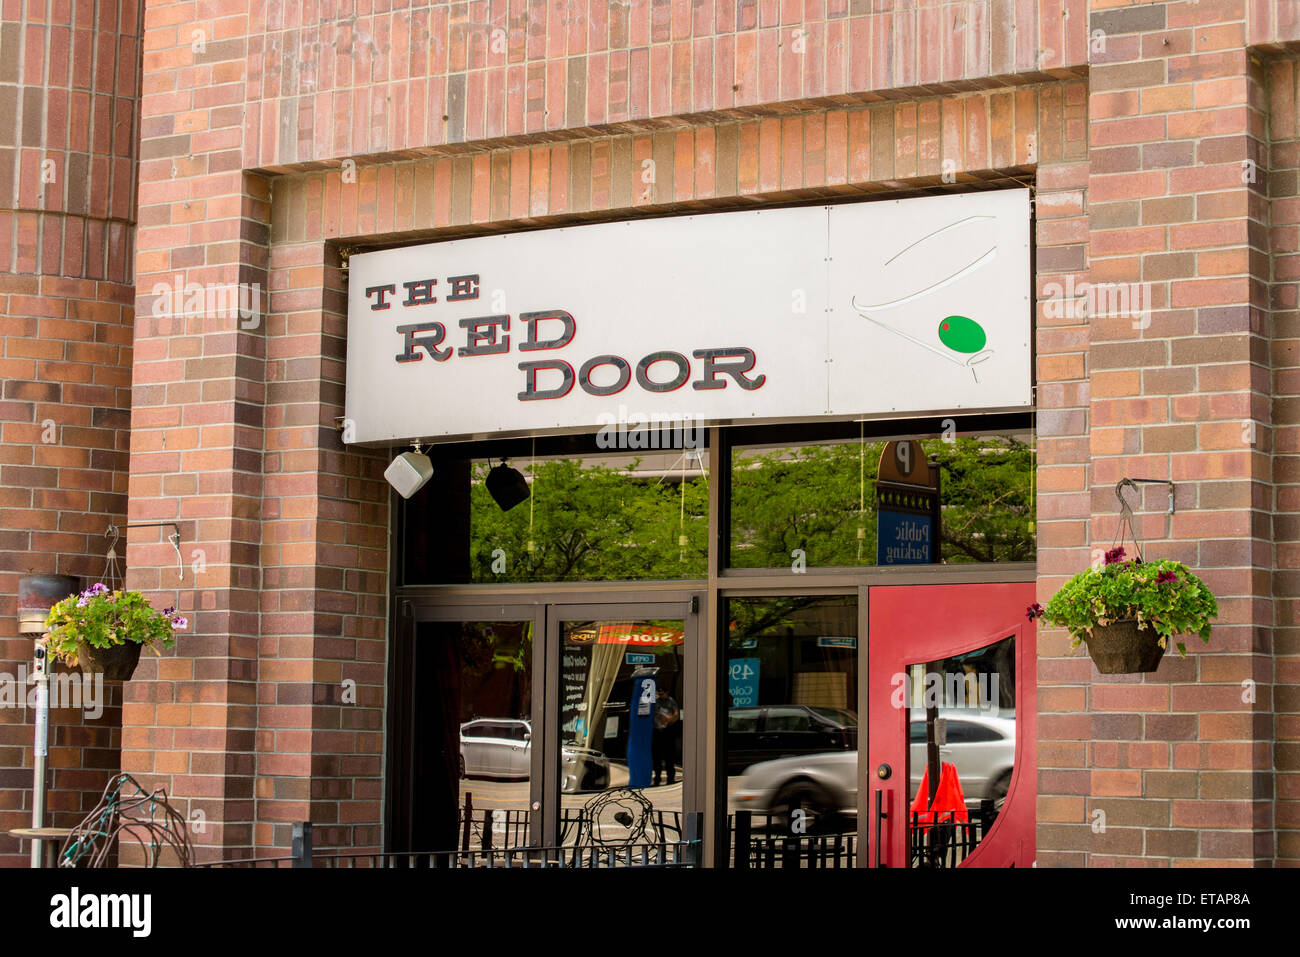 The Red Door Martini Bar   Salt Lake City, Utah   Stock Image